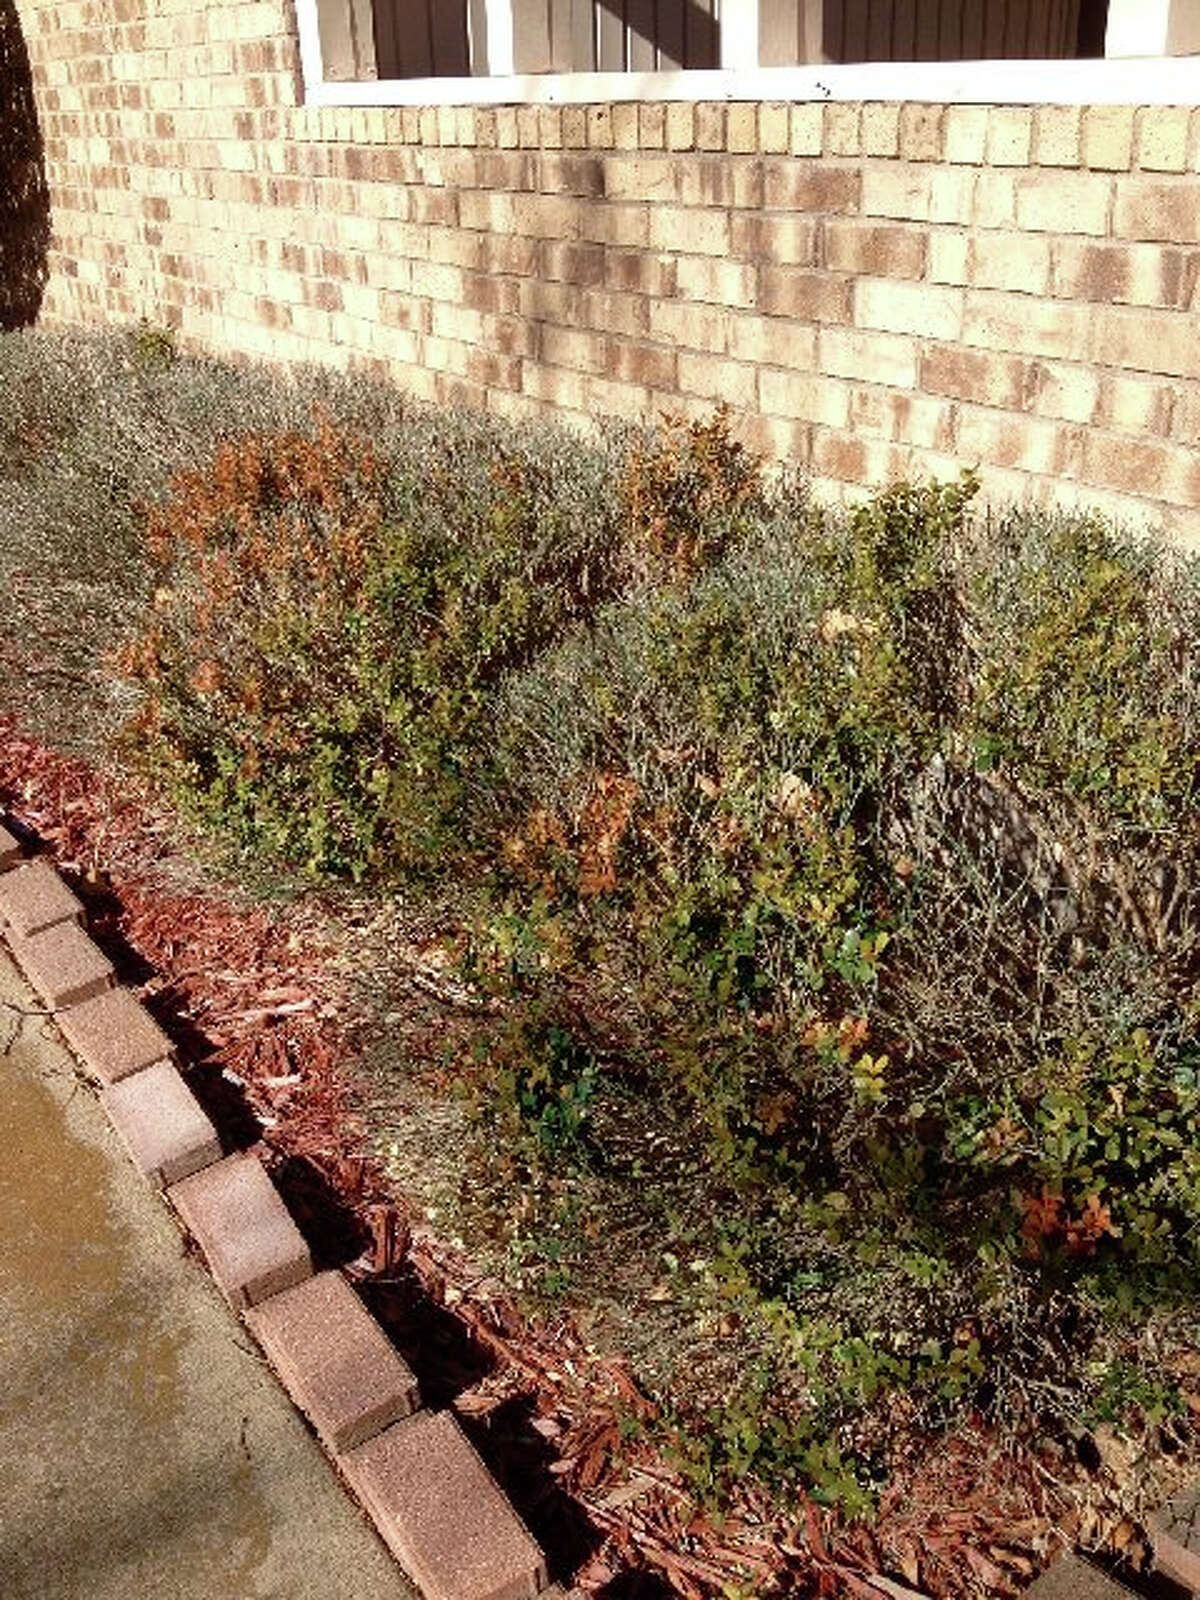 A row of damaged boxwood plants likely suffered the double-whammy of freeze and drought damage. They typically are cold hardy.